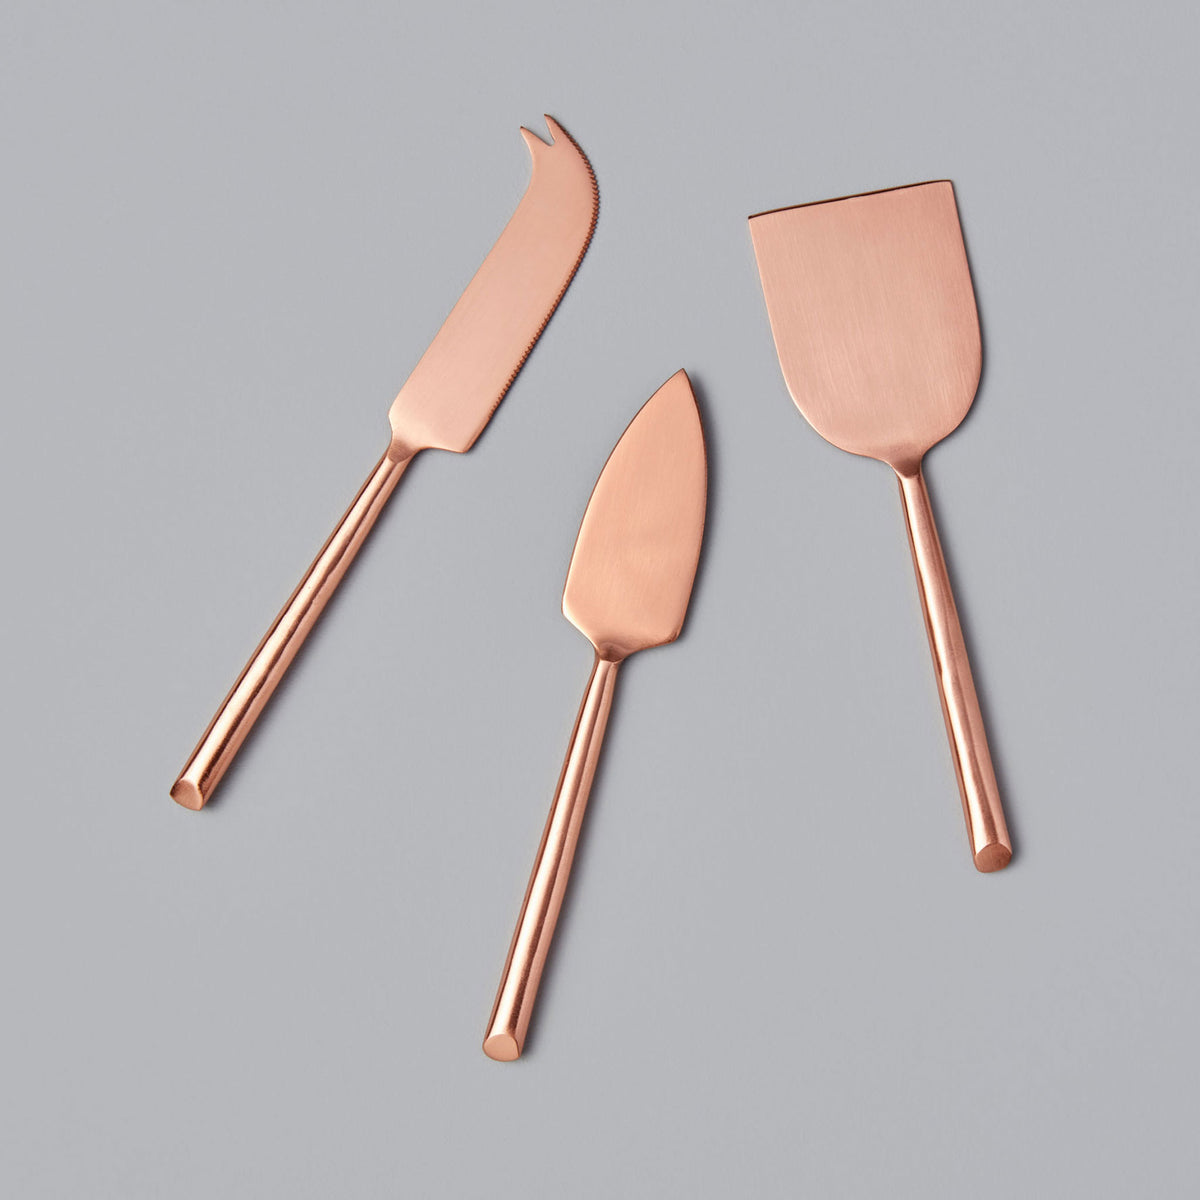 Matte Copper Cheese Knife Set of 3